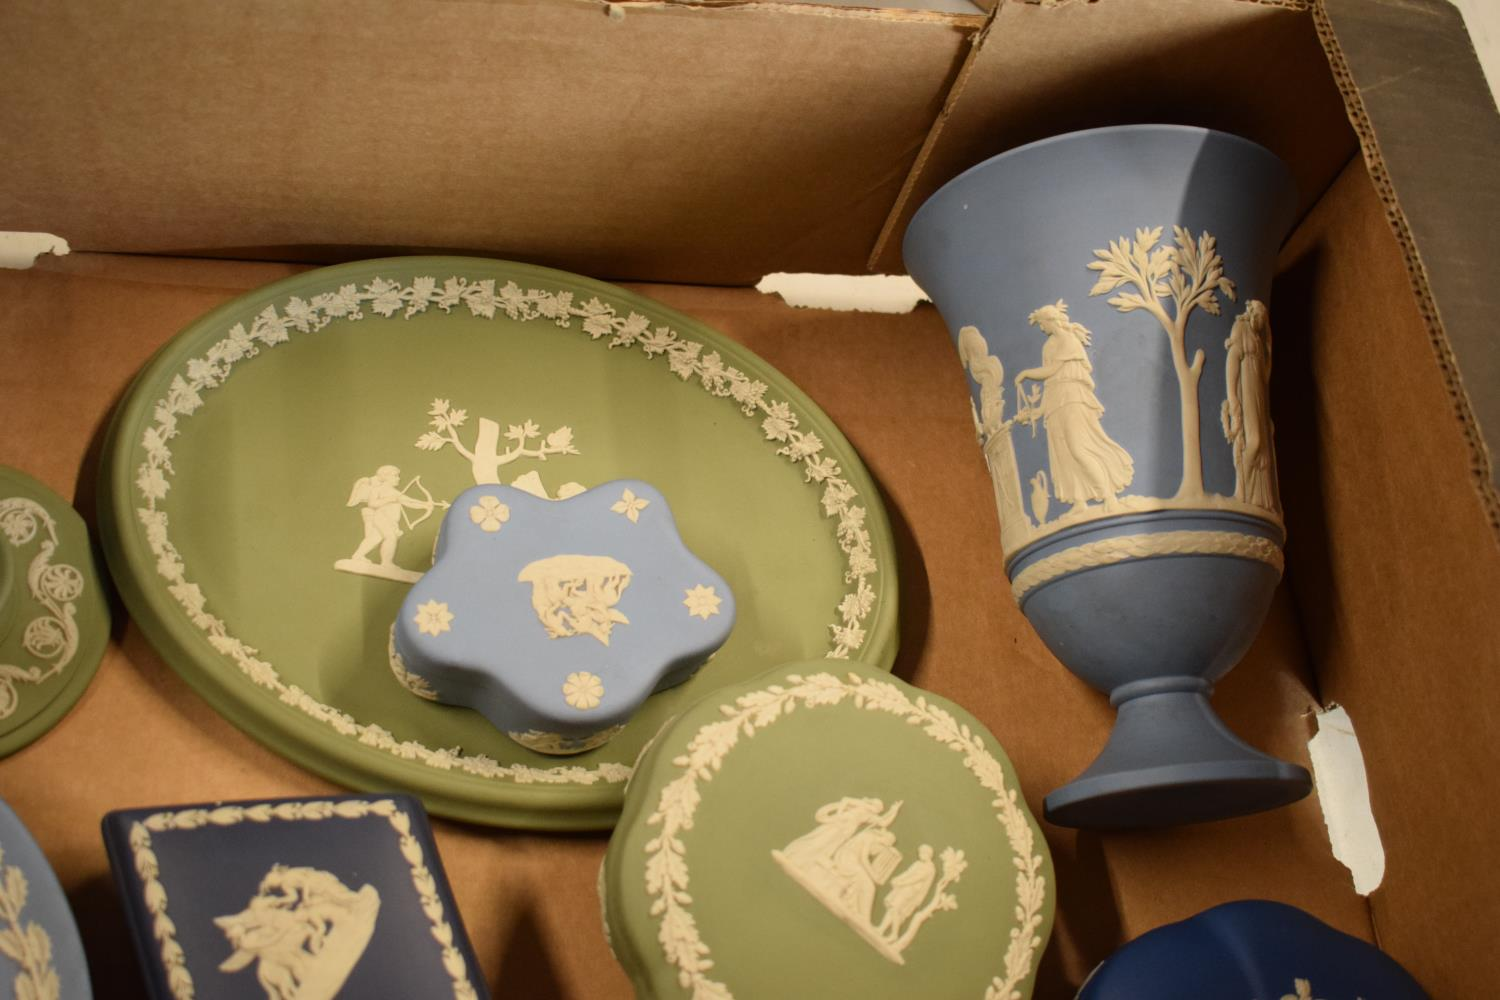 A collection of Wedgwood Jasperware to include vases, plates, trinkets etc in an array of colours to - Image 5 of 6